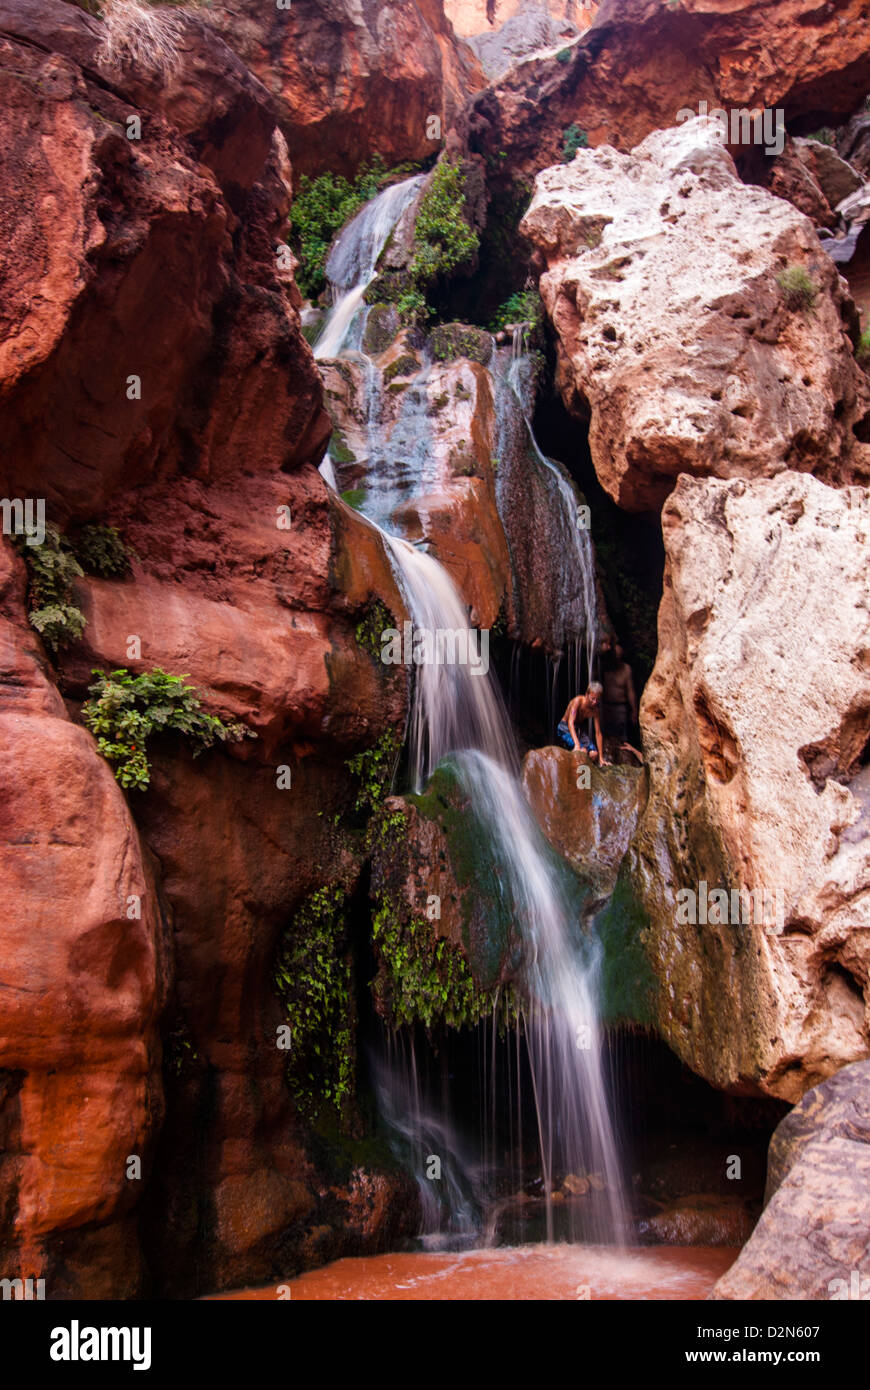 Tourist bathing in a waterfall, seen while rafting down the Colorado River, Grand Canyon, Arizona, USA - Stock Image